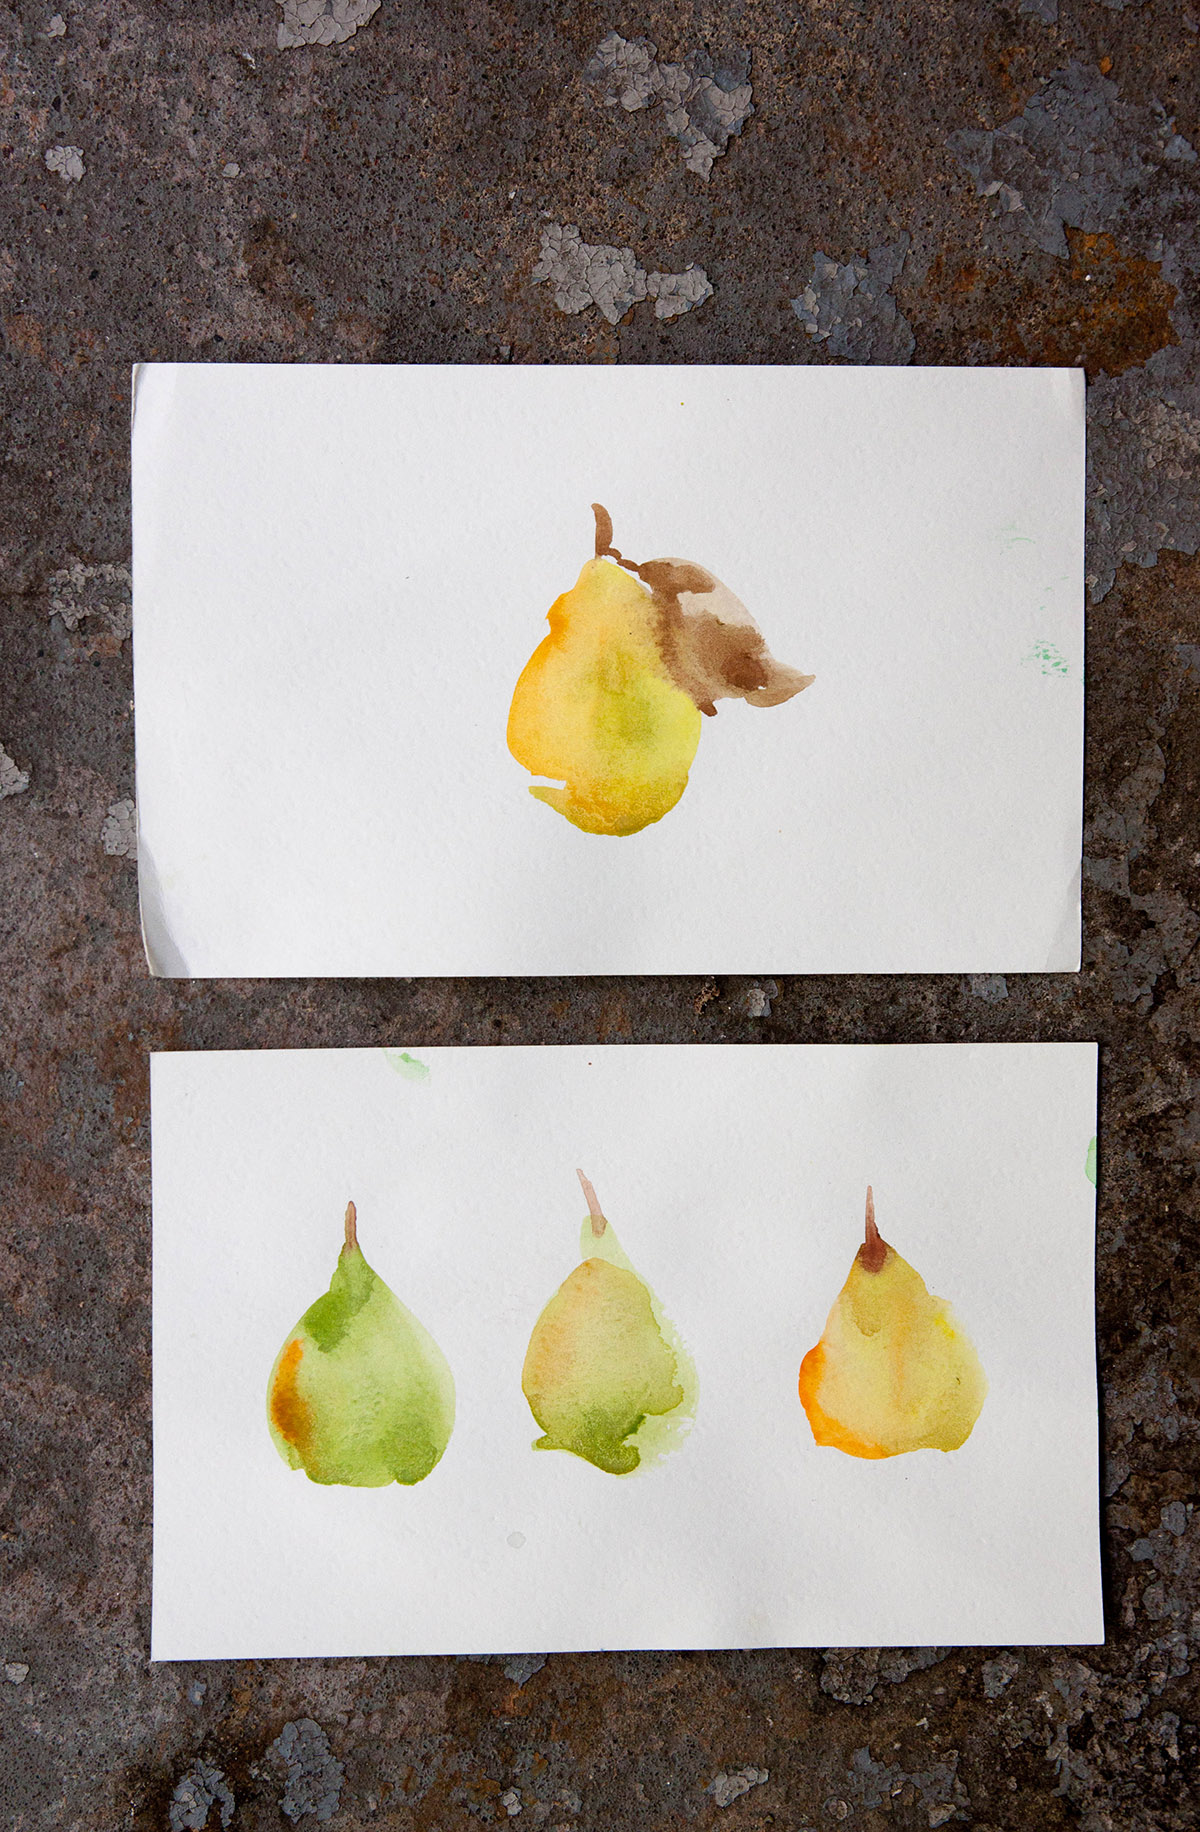 Some of Zaza's tiny painted pears.